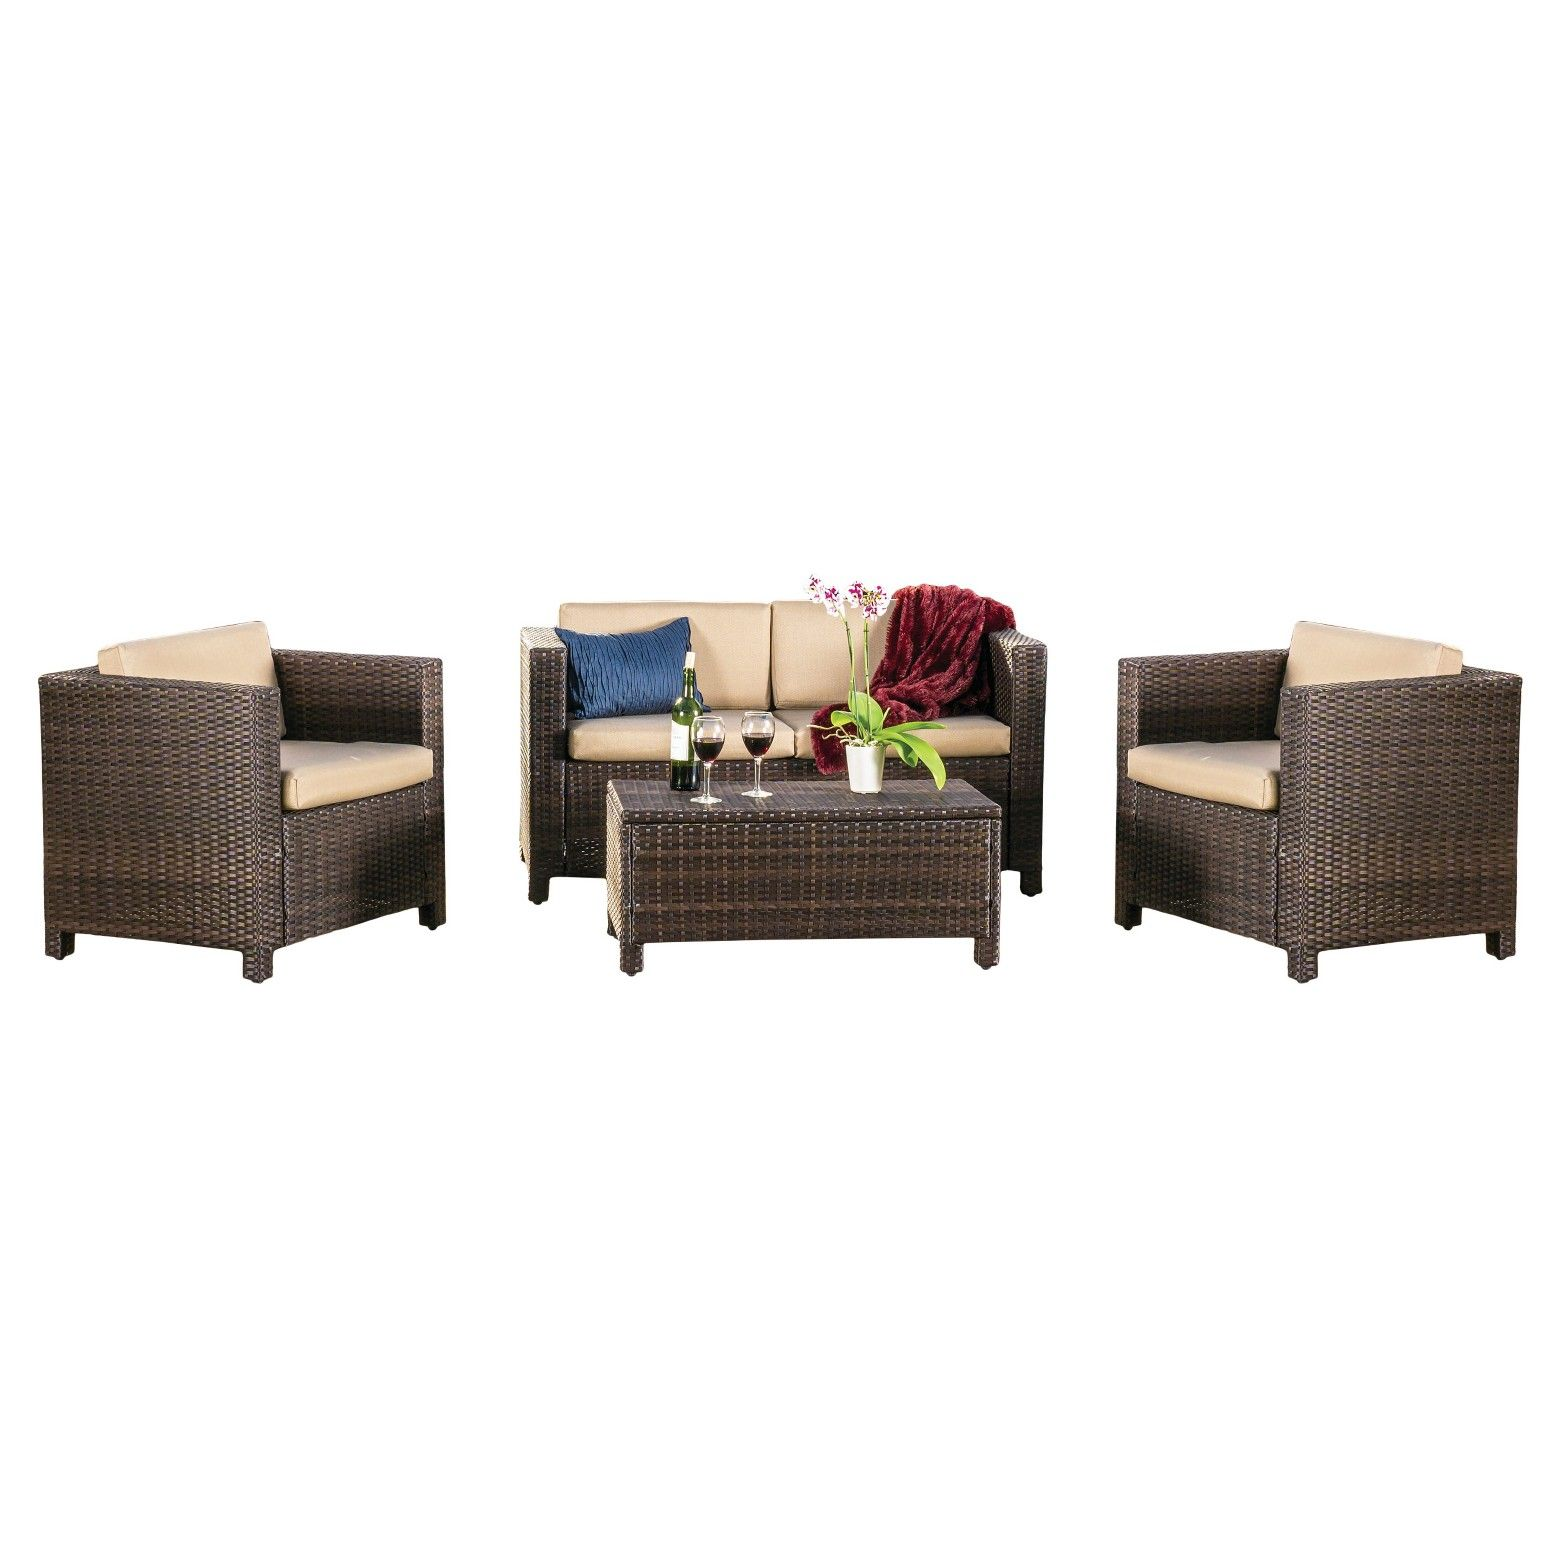 Christopher Knight Home Puerta 4pc Outdoor Wicker Sofa set